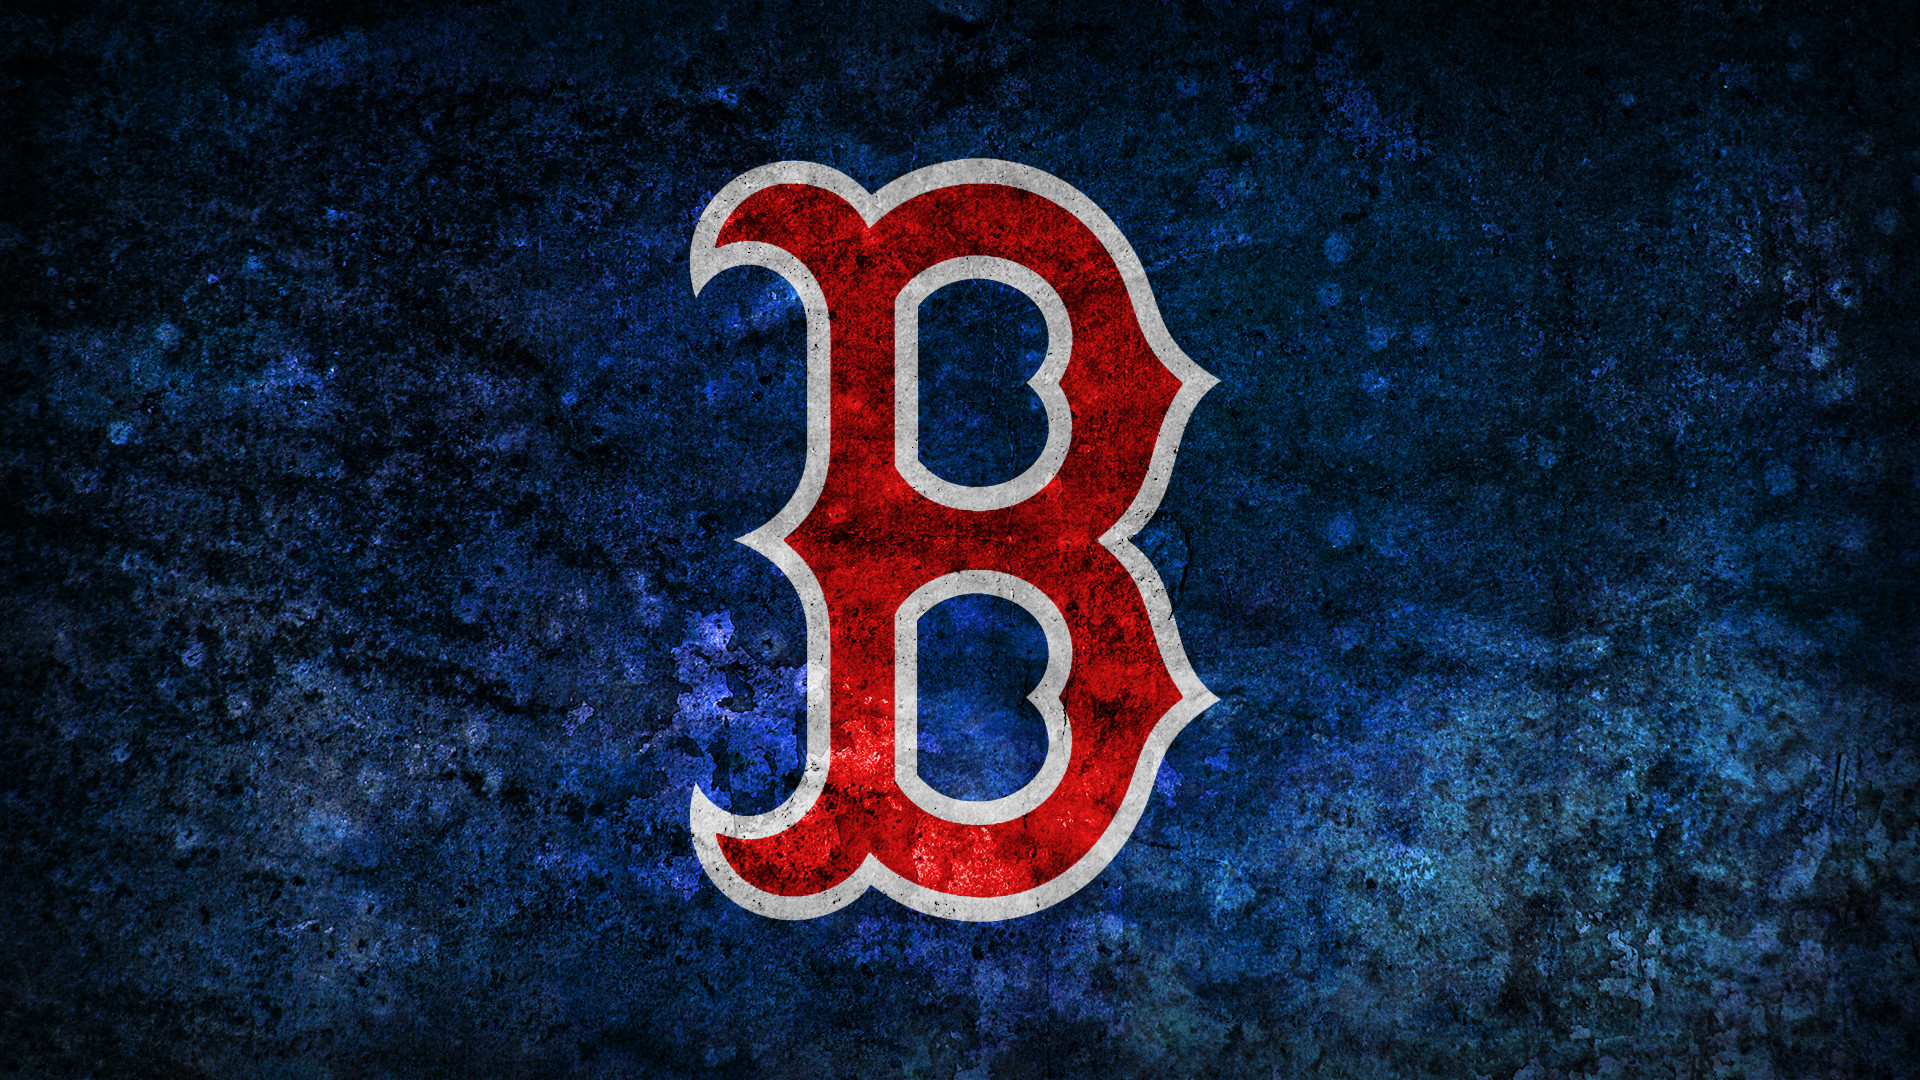 [Image] Some wallpapers I made. Naturally they are Red Sox wallpapers, but  I am willing to make them for all 30 teams if there is enough interest.